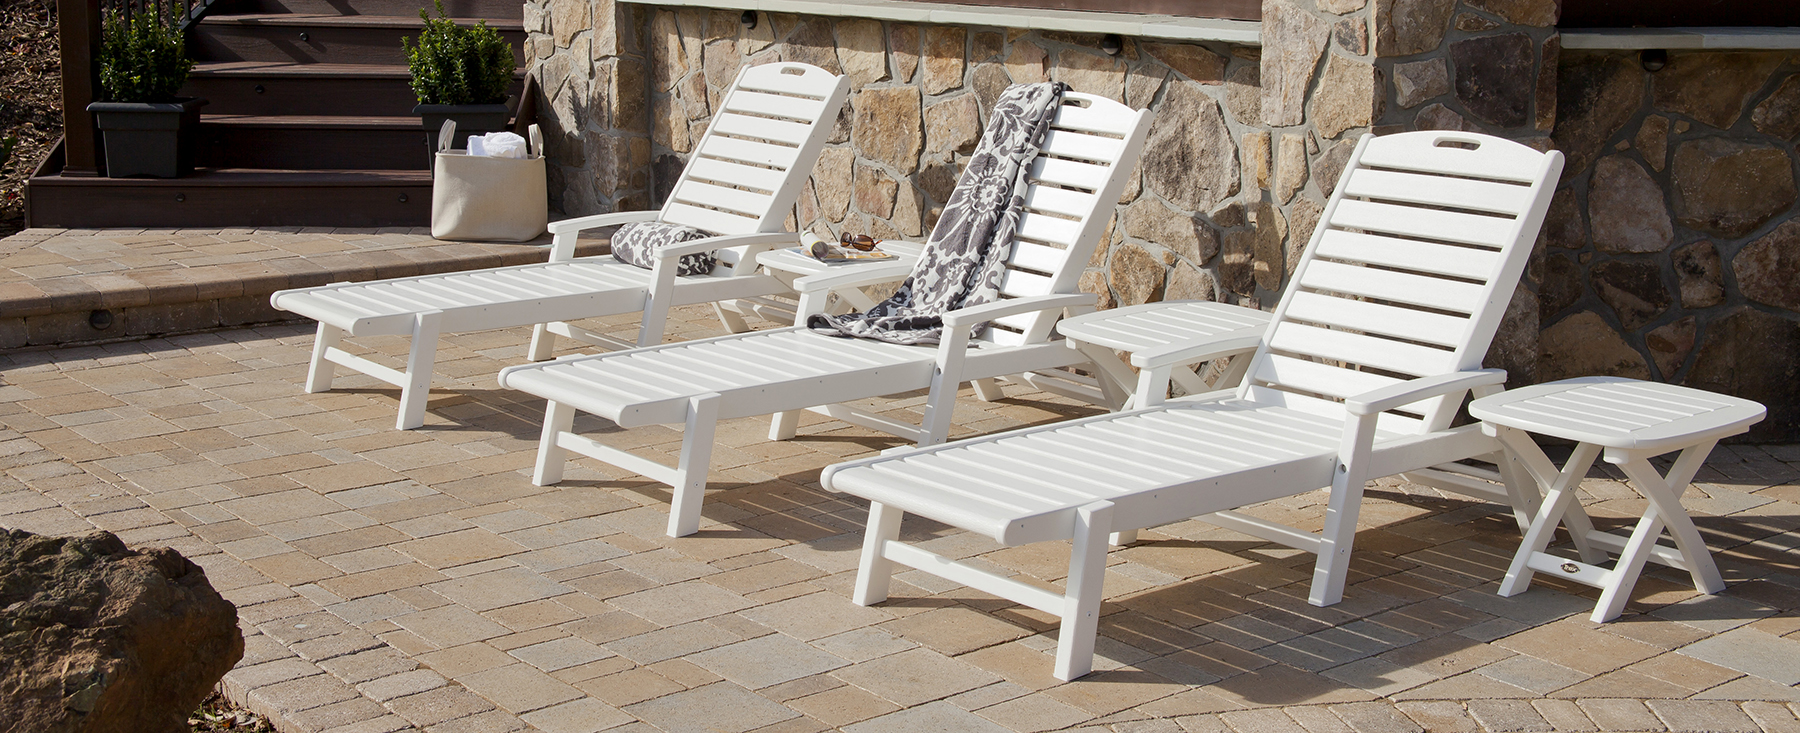 Pool Deck Chairs Pool Deck Width For Lounge Chairs